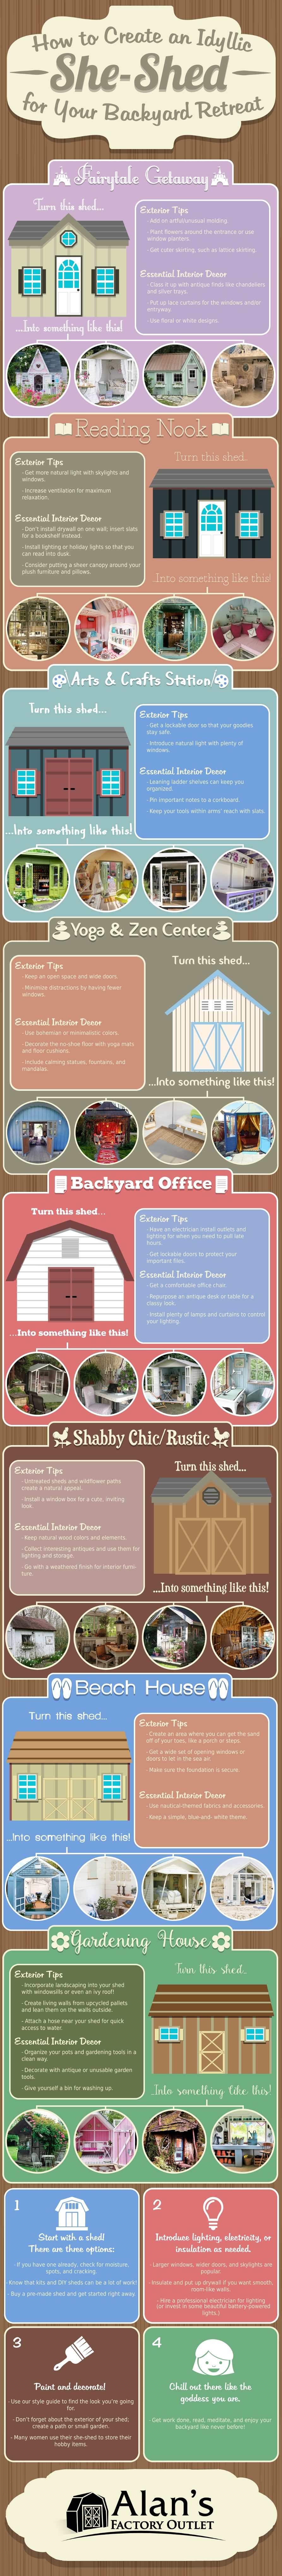 How to Convert the Garden Shed into an Idyllic Personal Space - Infographic